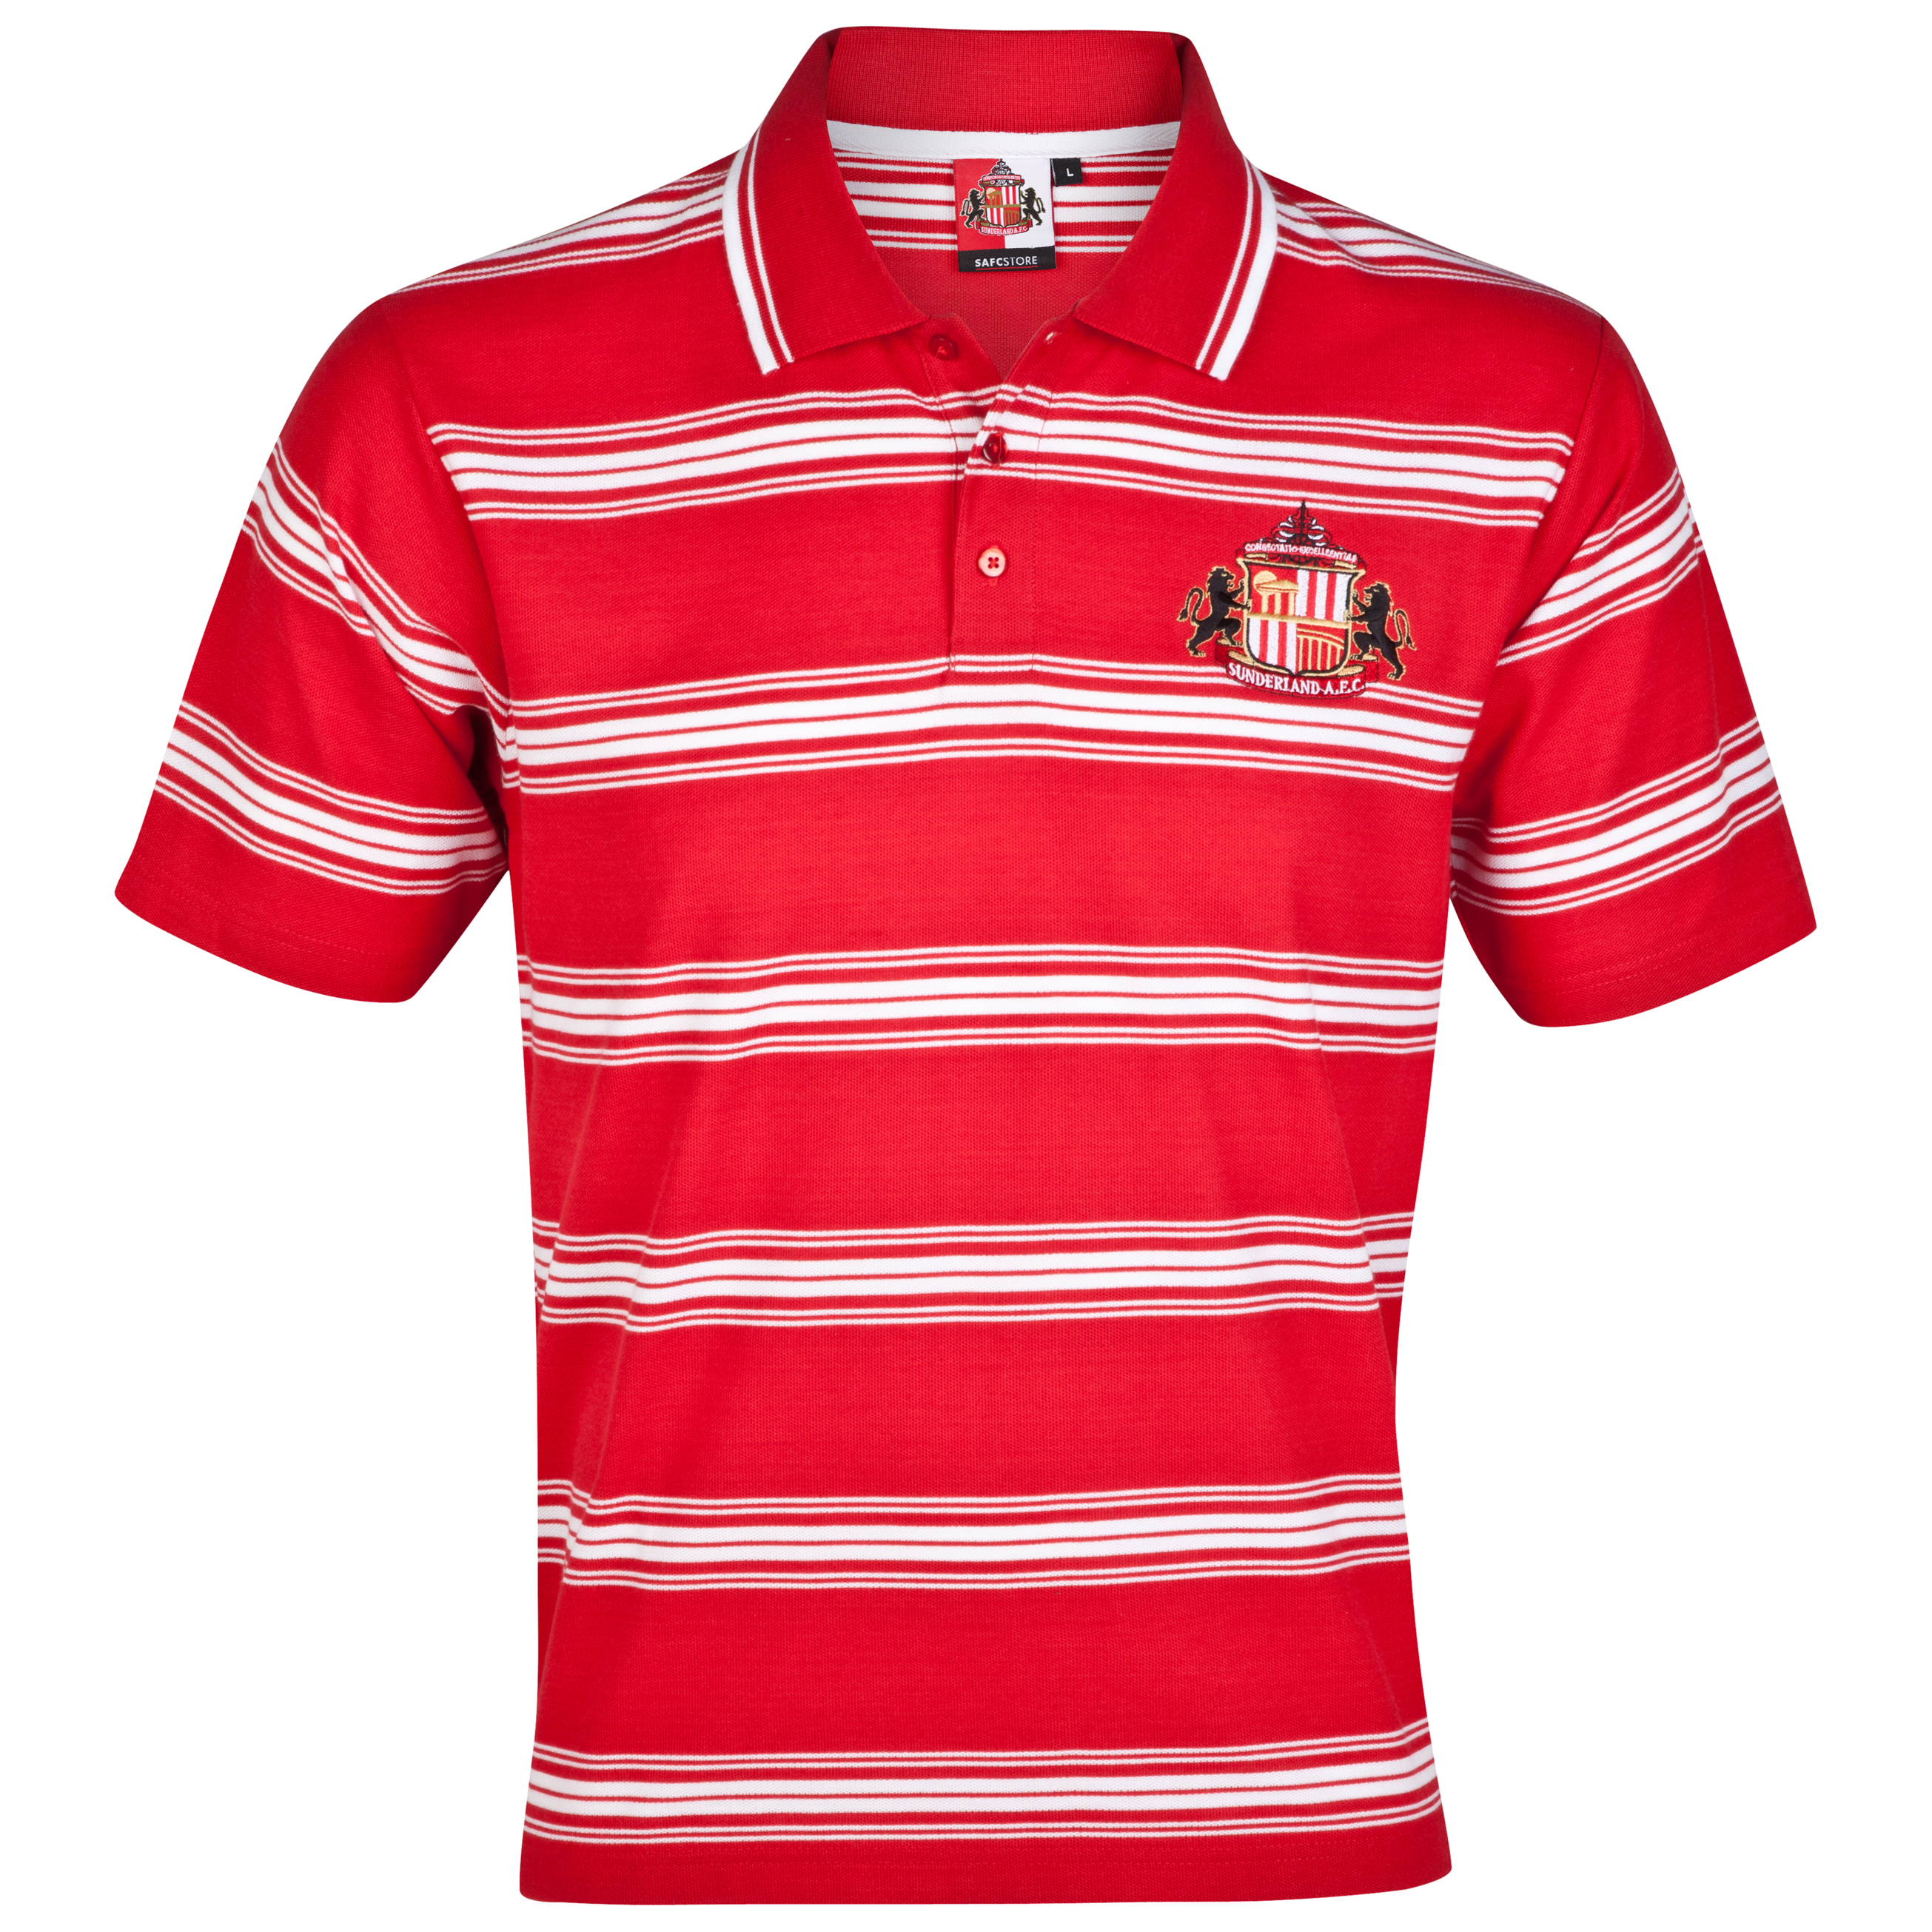 Sunderland Essential Precise Stripe Polo Top - Red - Infant Boys